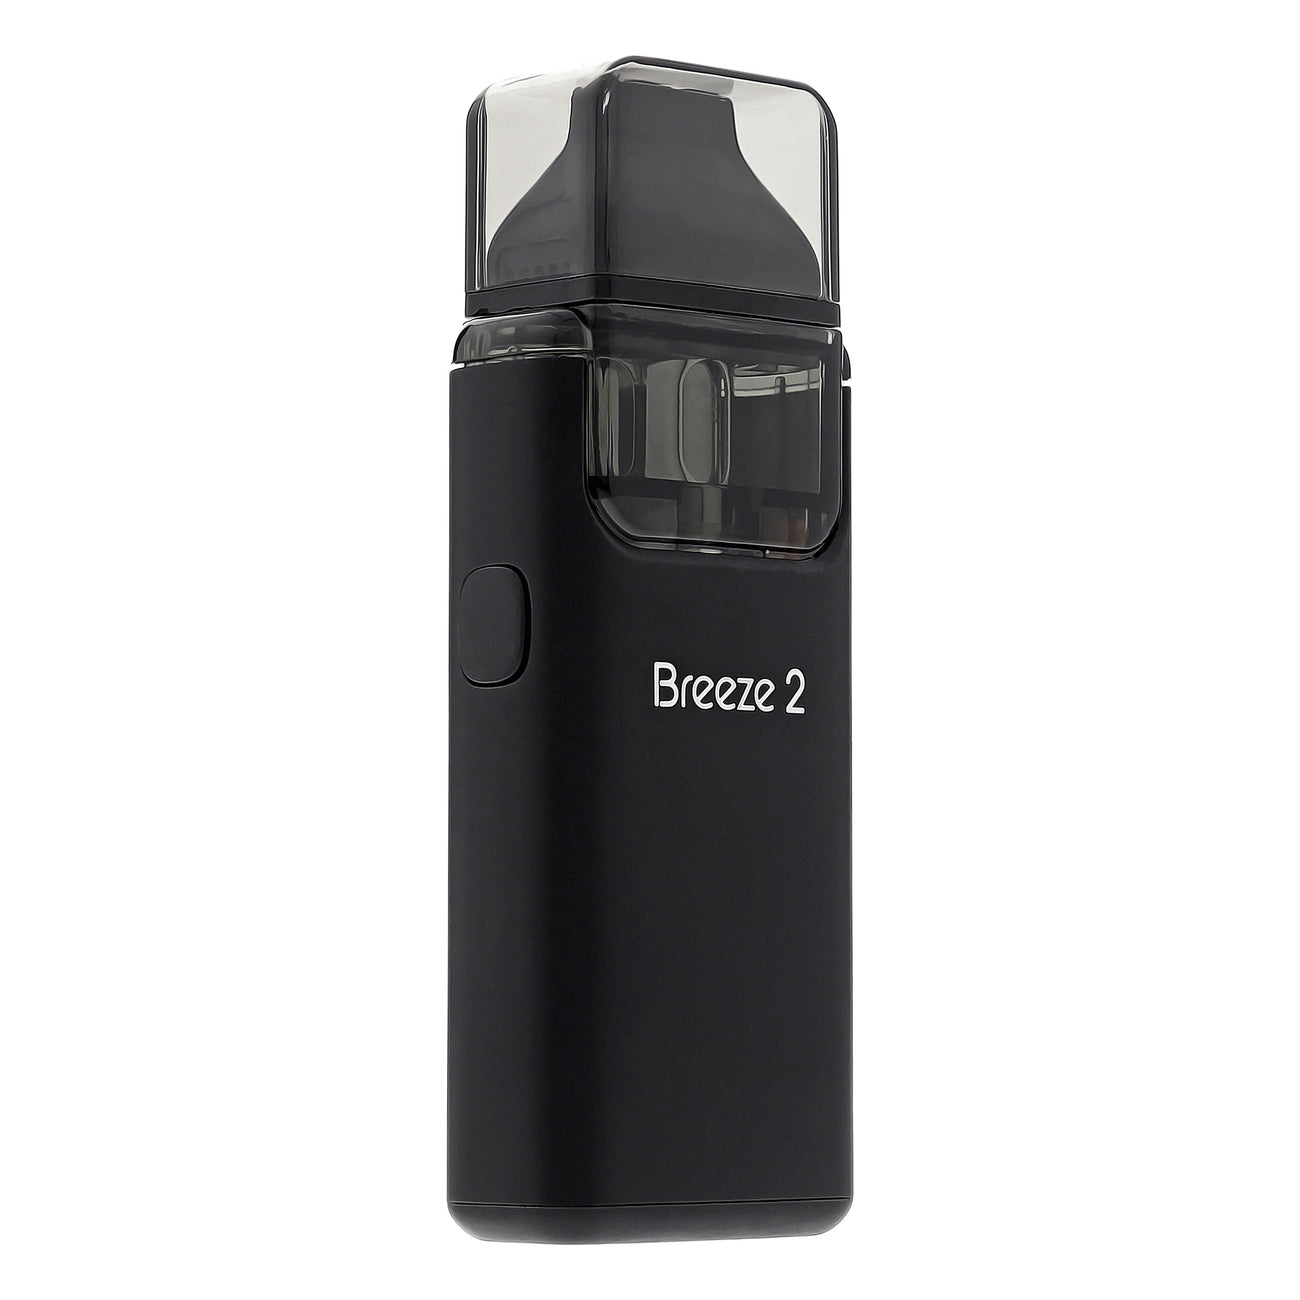 Aspire Breeze 2 Starter Kit Description One